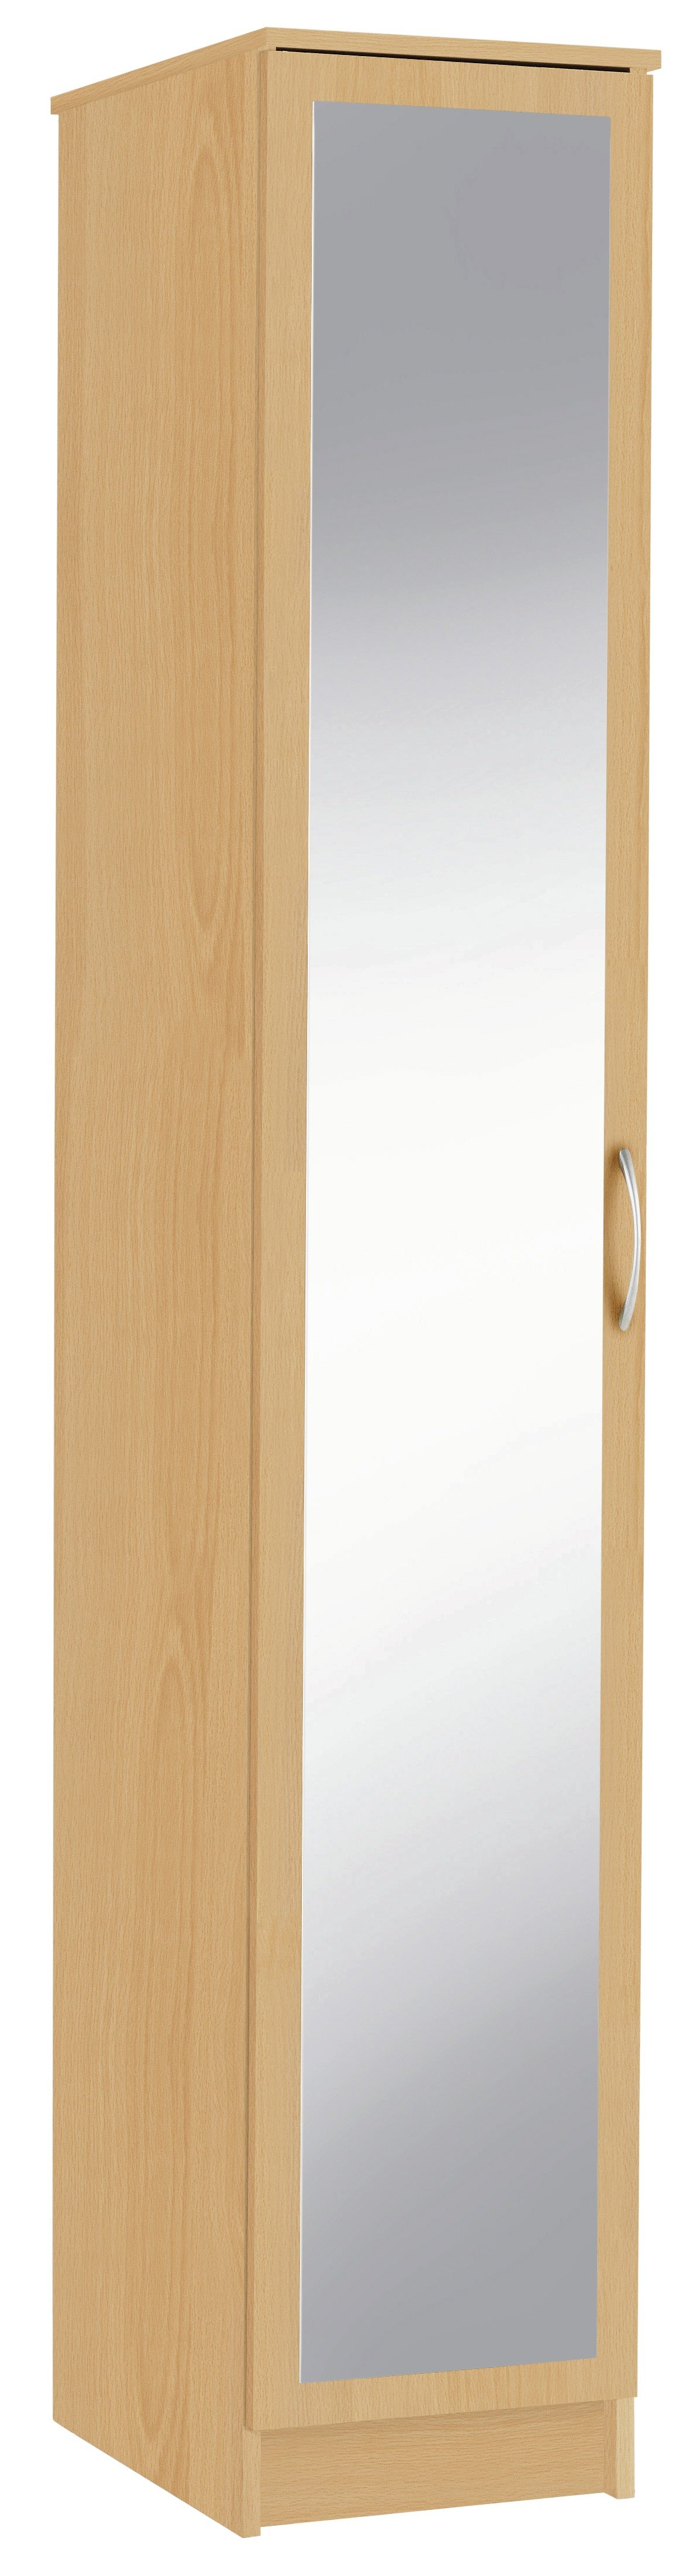 Argos Home Cheval Single Mirrored Wardrobe